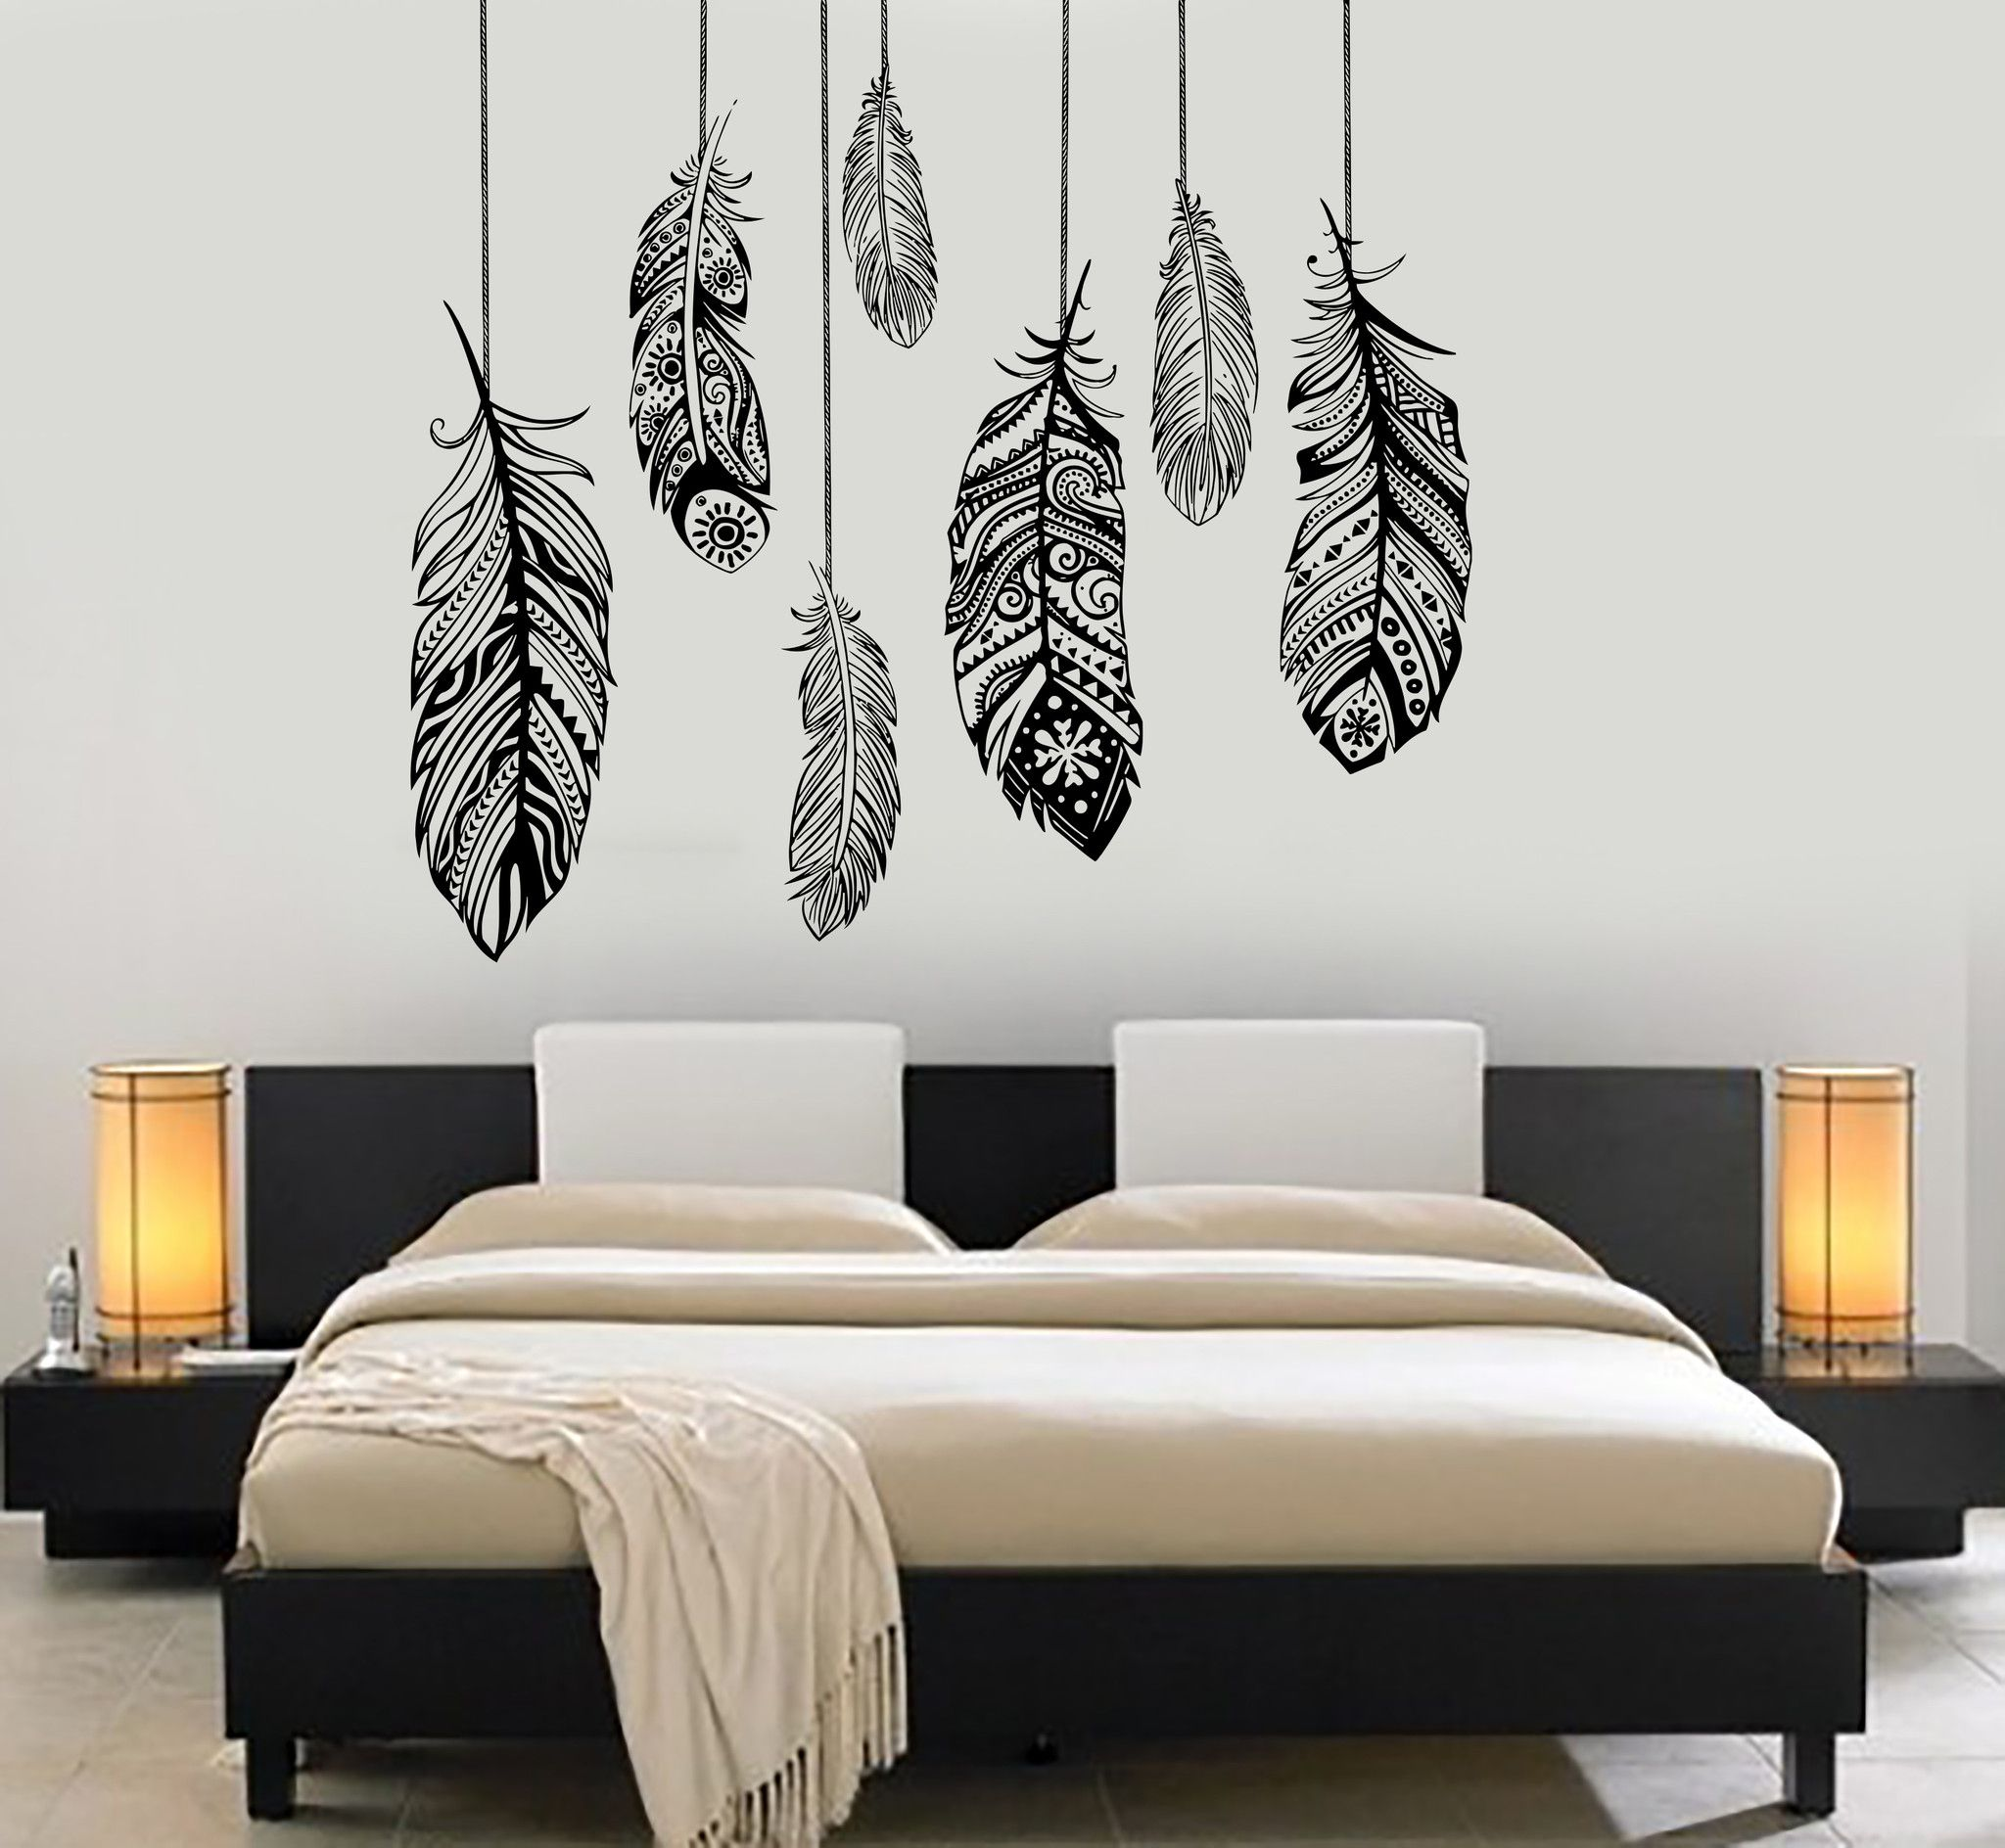 Vinyl Wall Decal Wall Vinyl Decal Feather Romantic Bedroom Dreamcatcher